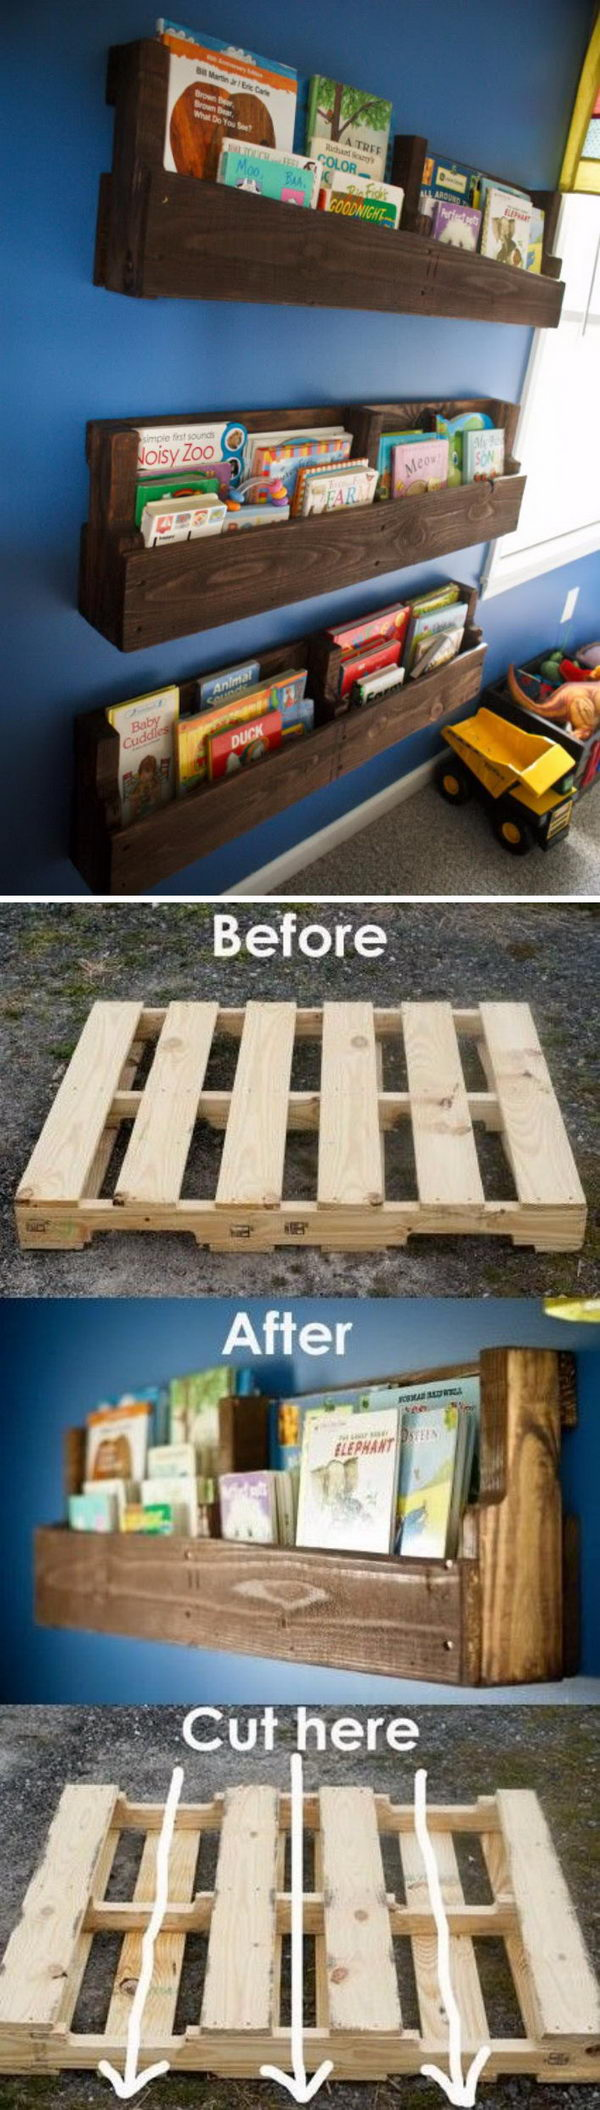 20 Cool DIY Shelf Ideas to Spruce Up Your Boy's Room Wall 2017